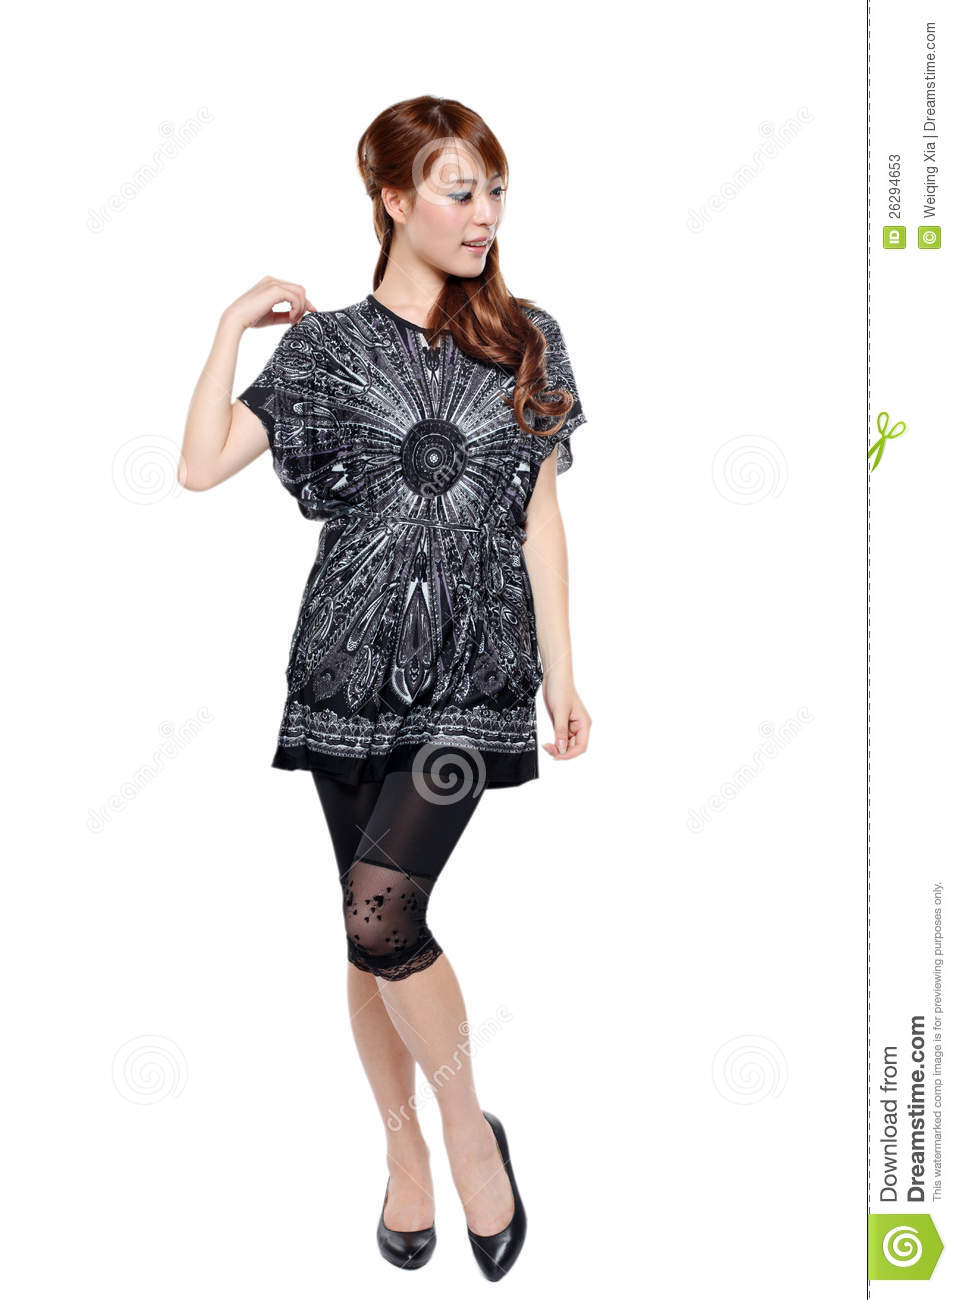 fashion model pose stock image image of asia asian